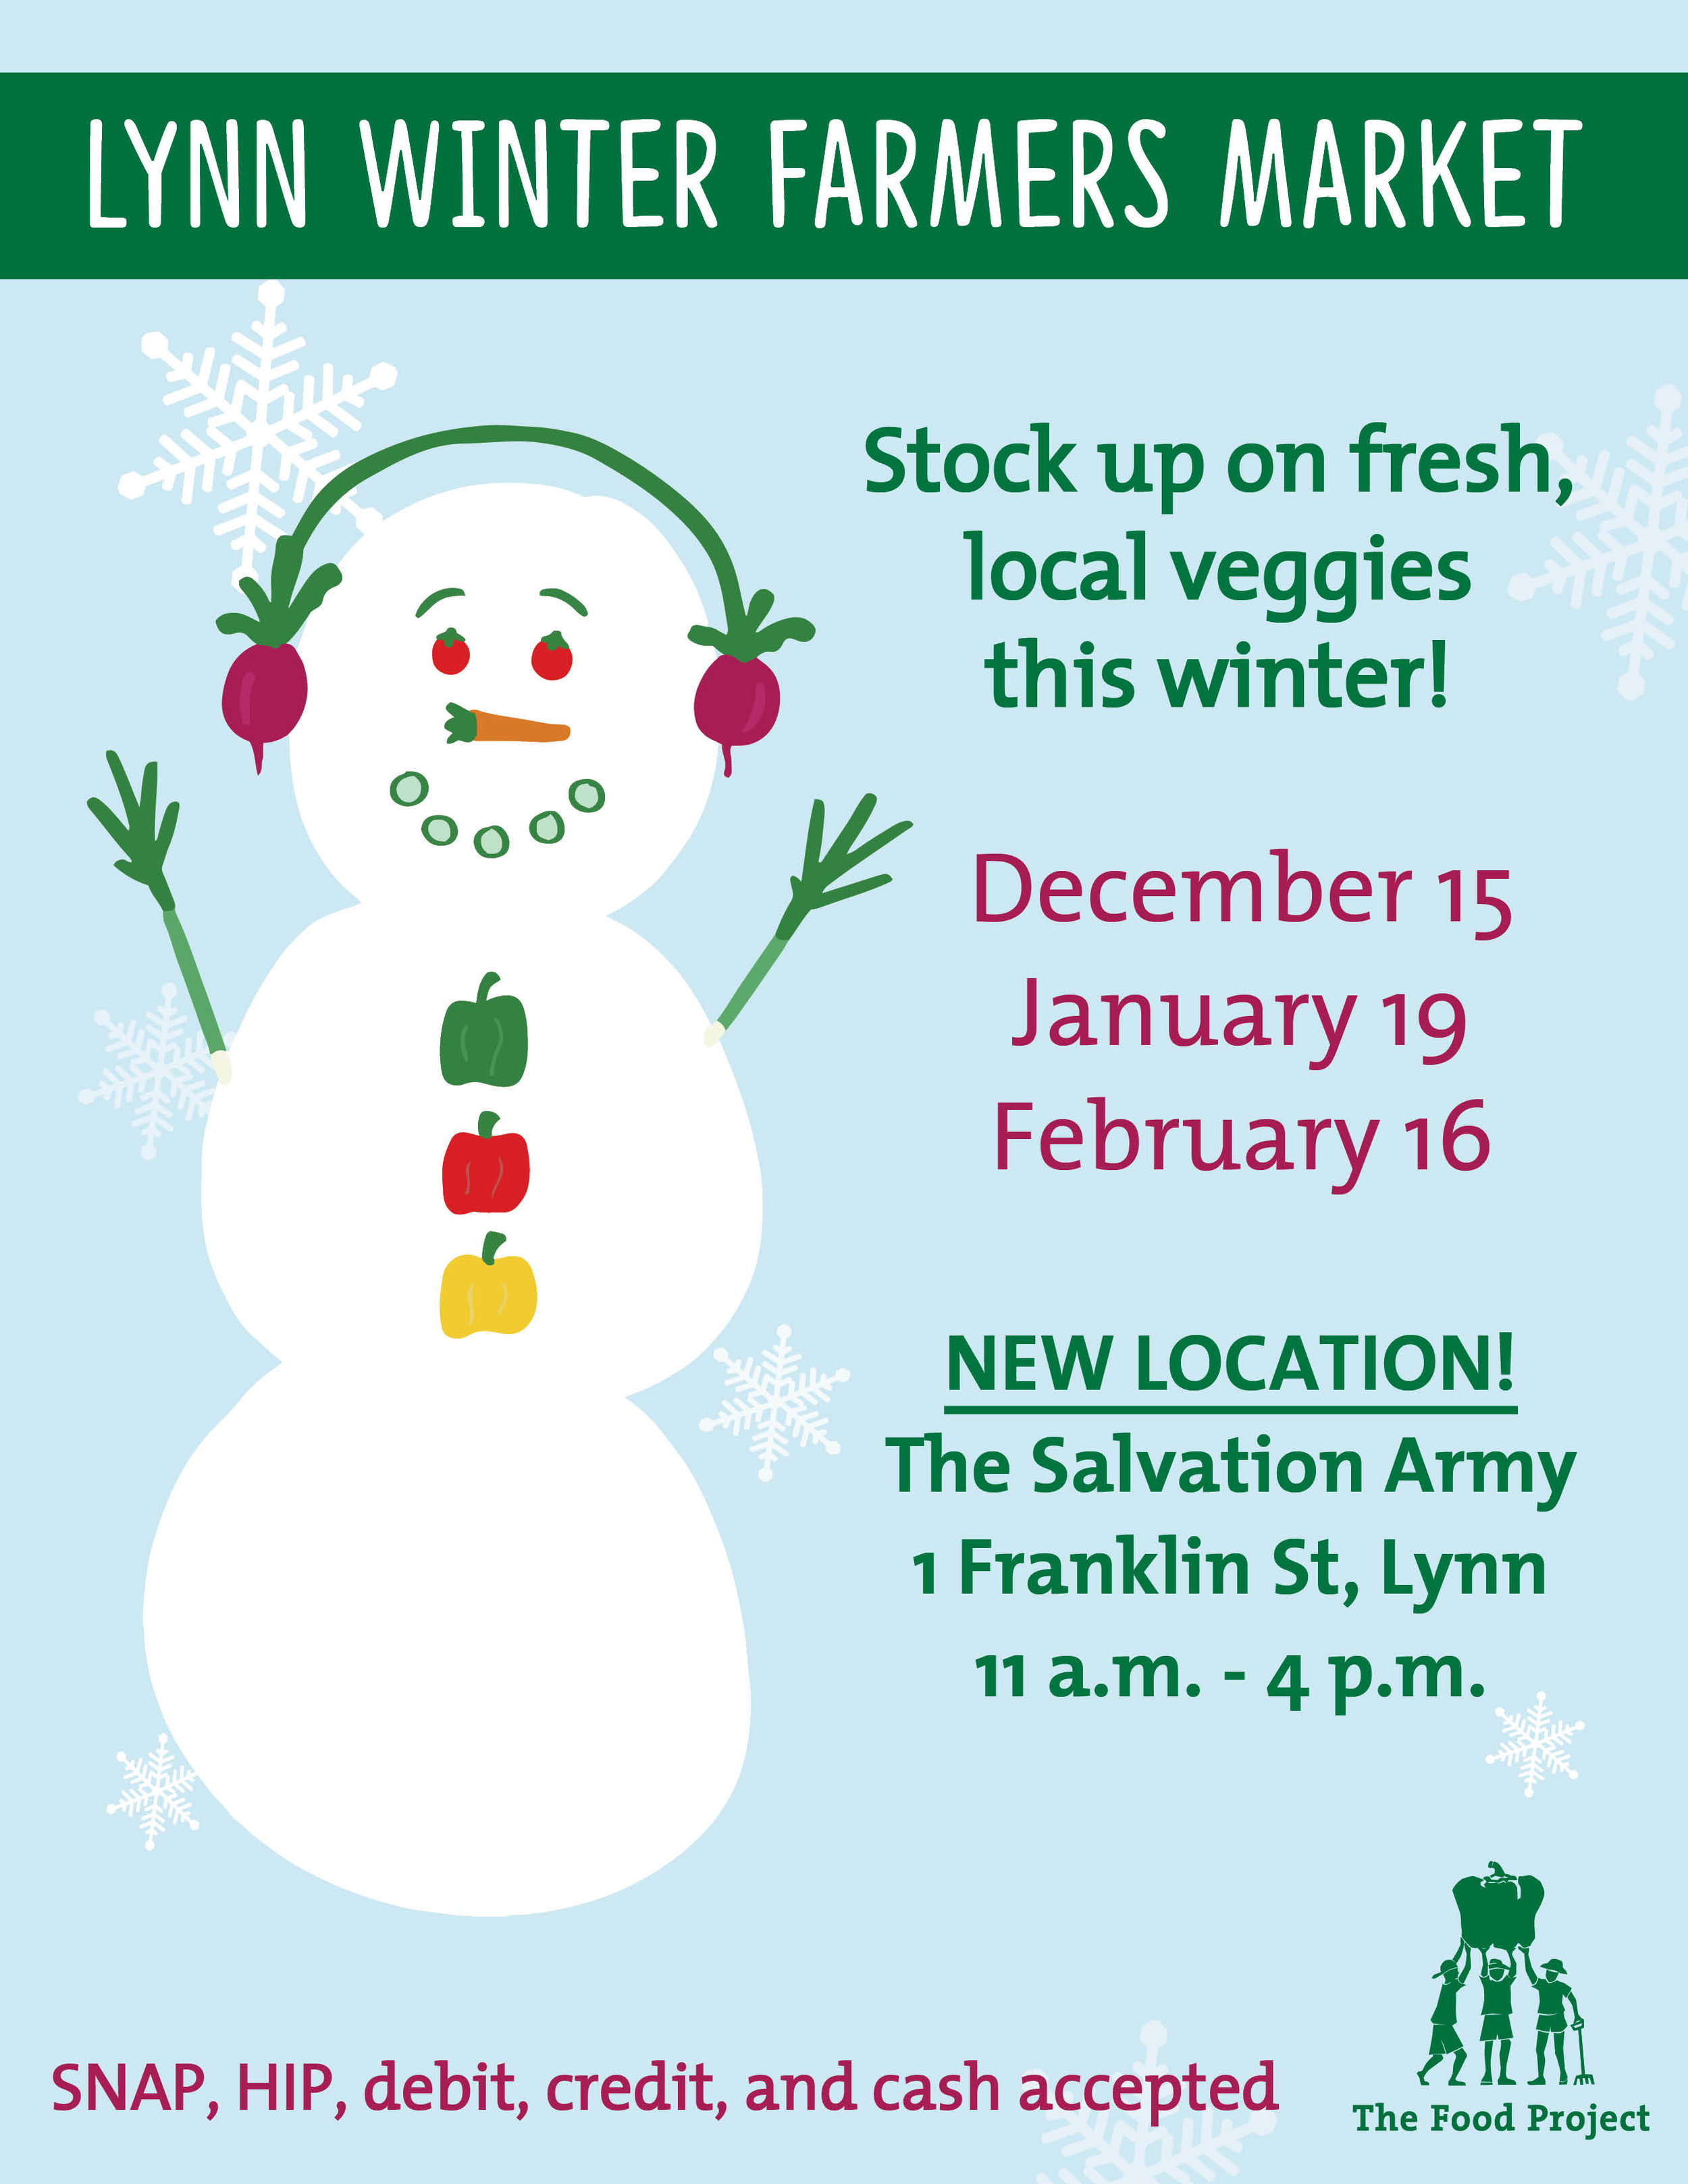 Lynn_Winter_Farmer_Market_Flyer.jpg